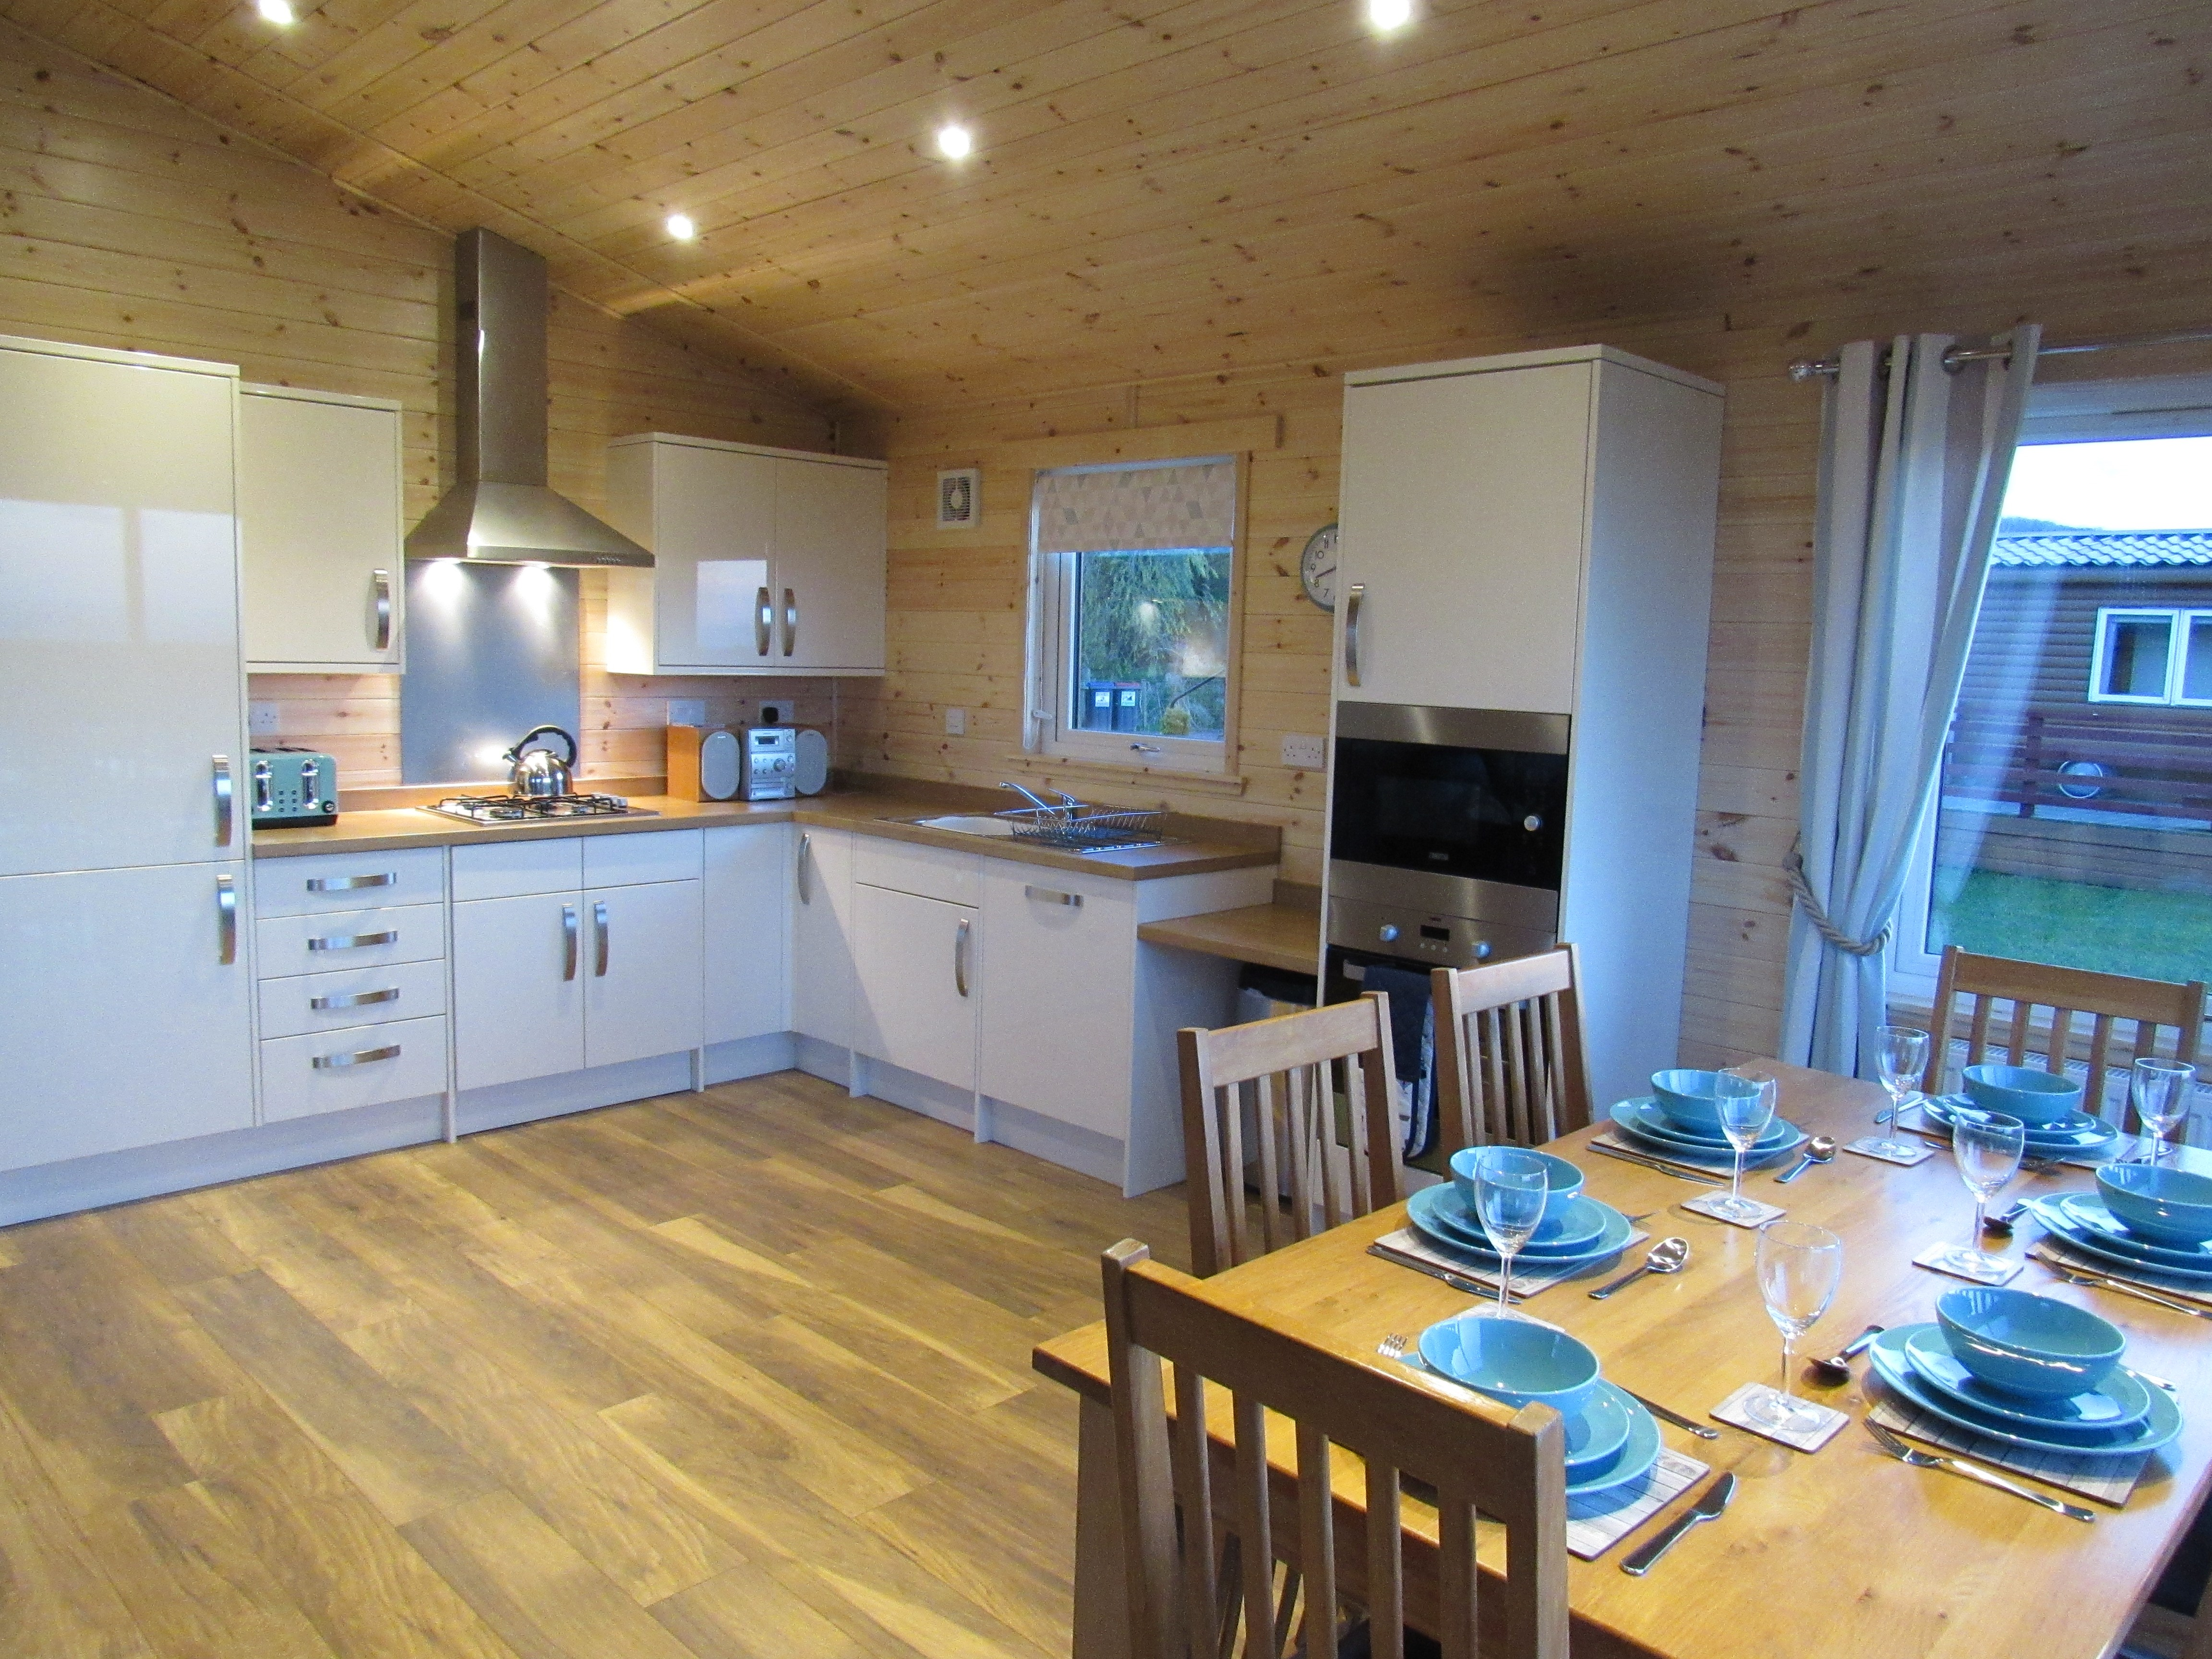 MND Scotland to invest £250,000 in new accessible holiday lodge